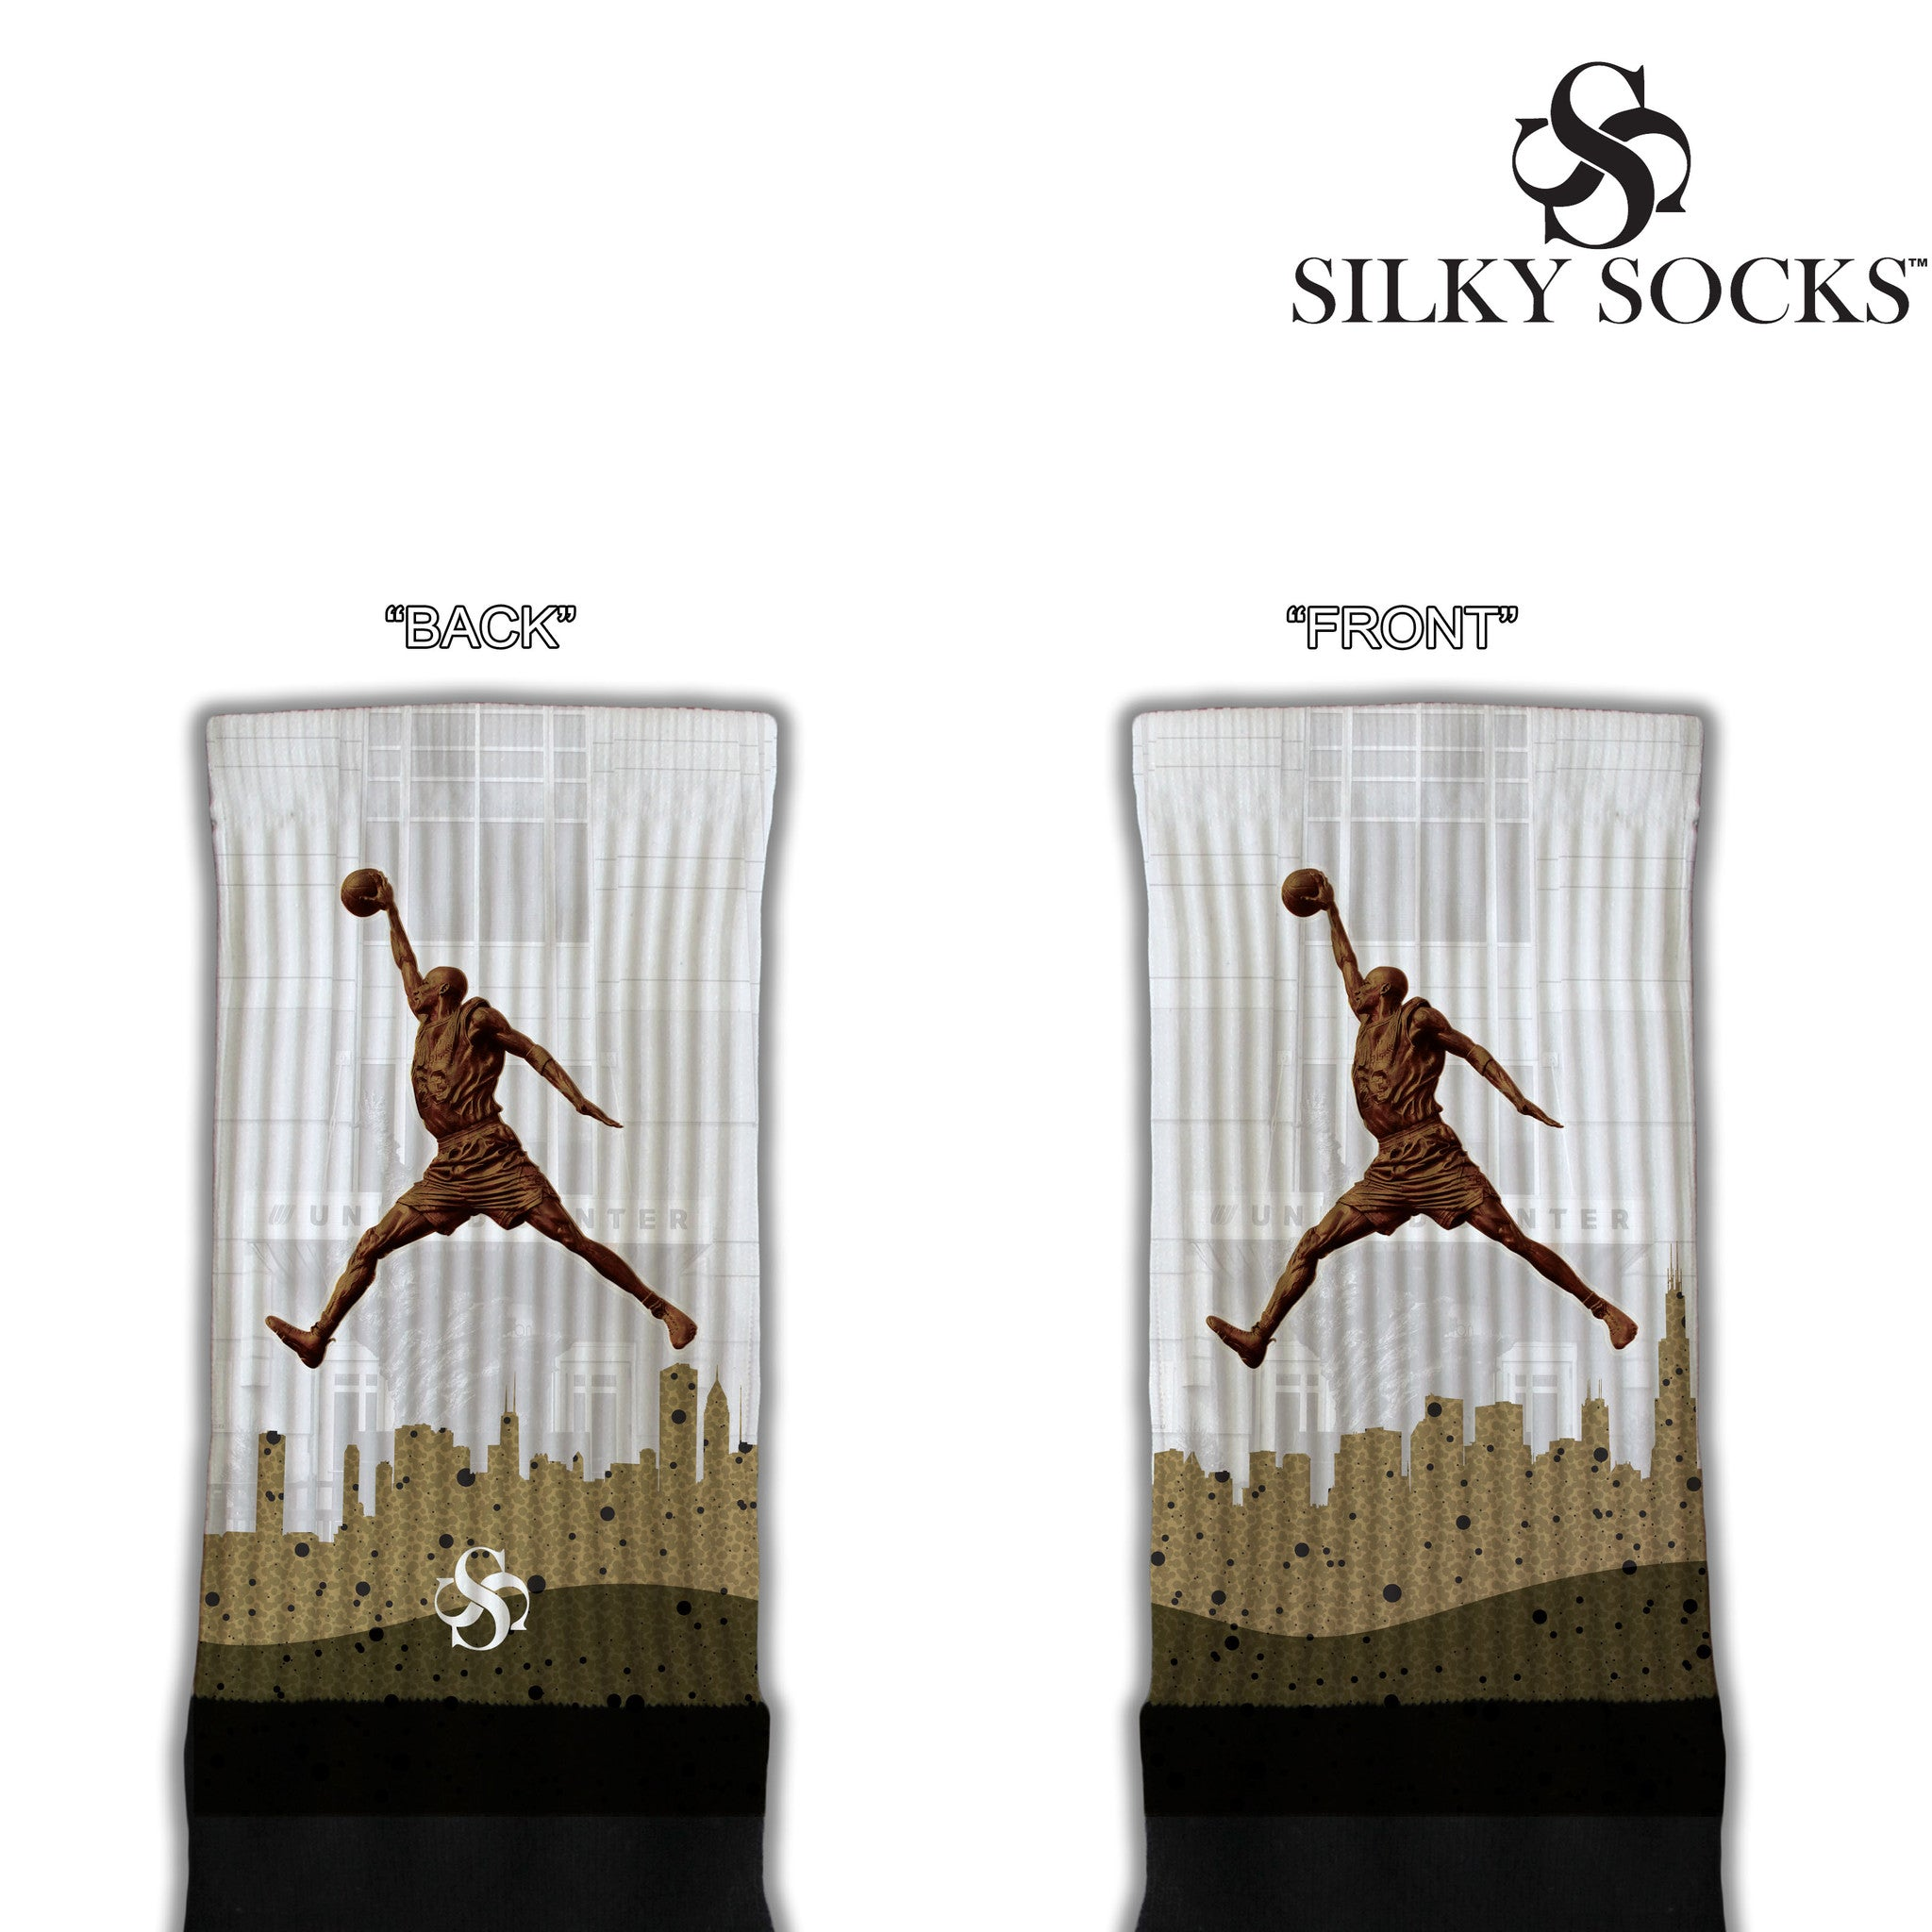 Legendary Silky Socks Jordan Statue United Center Chicago match Air Jordan Shoes Sneakerhead